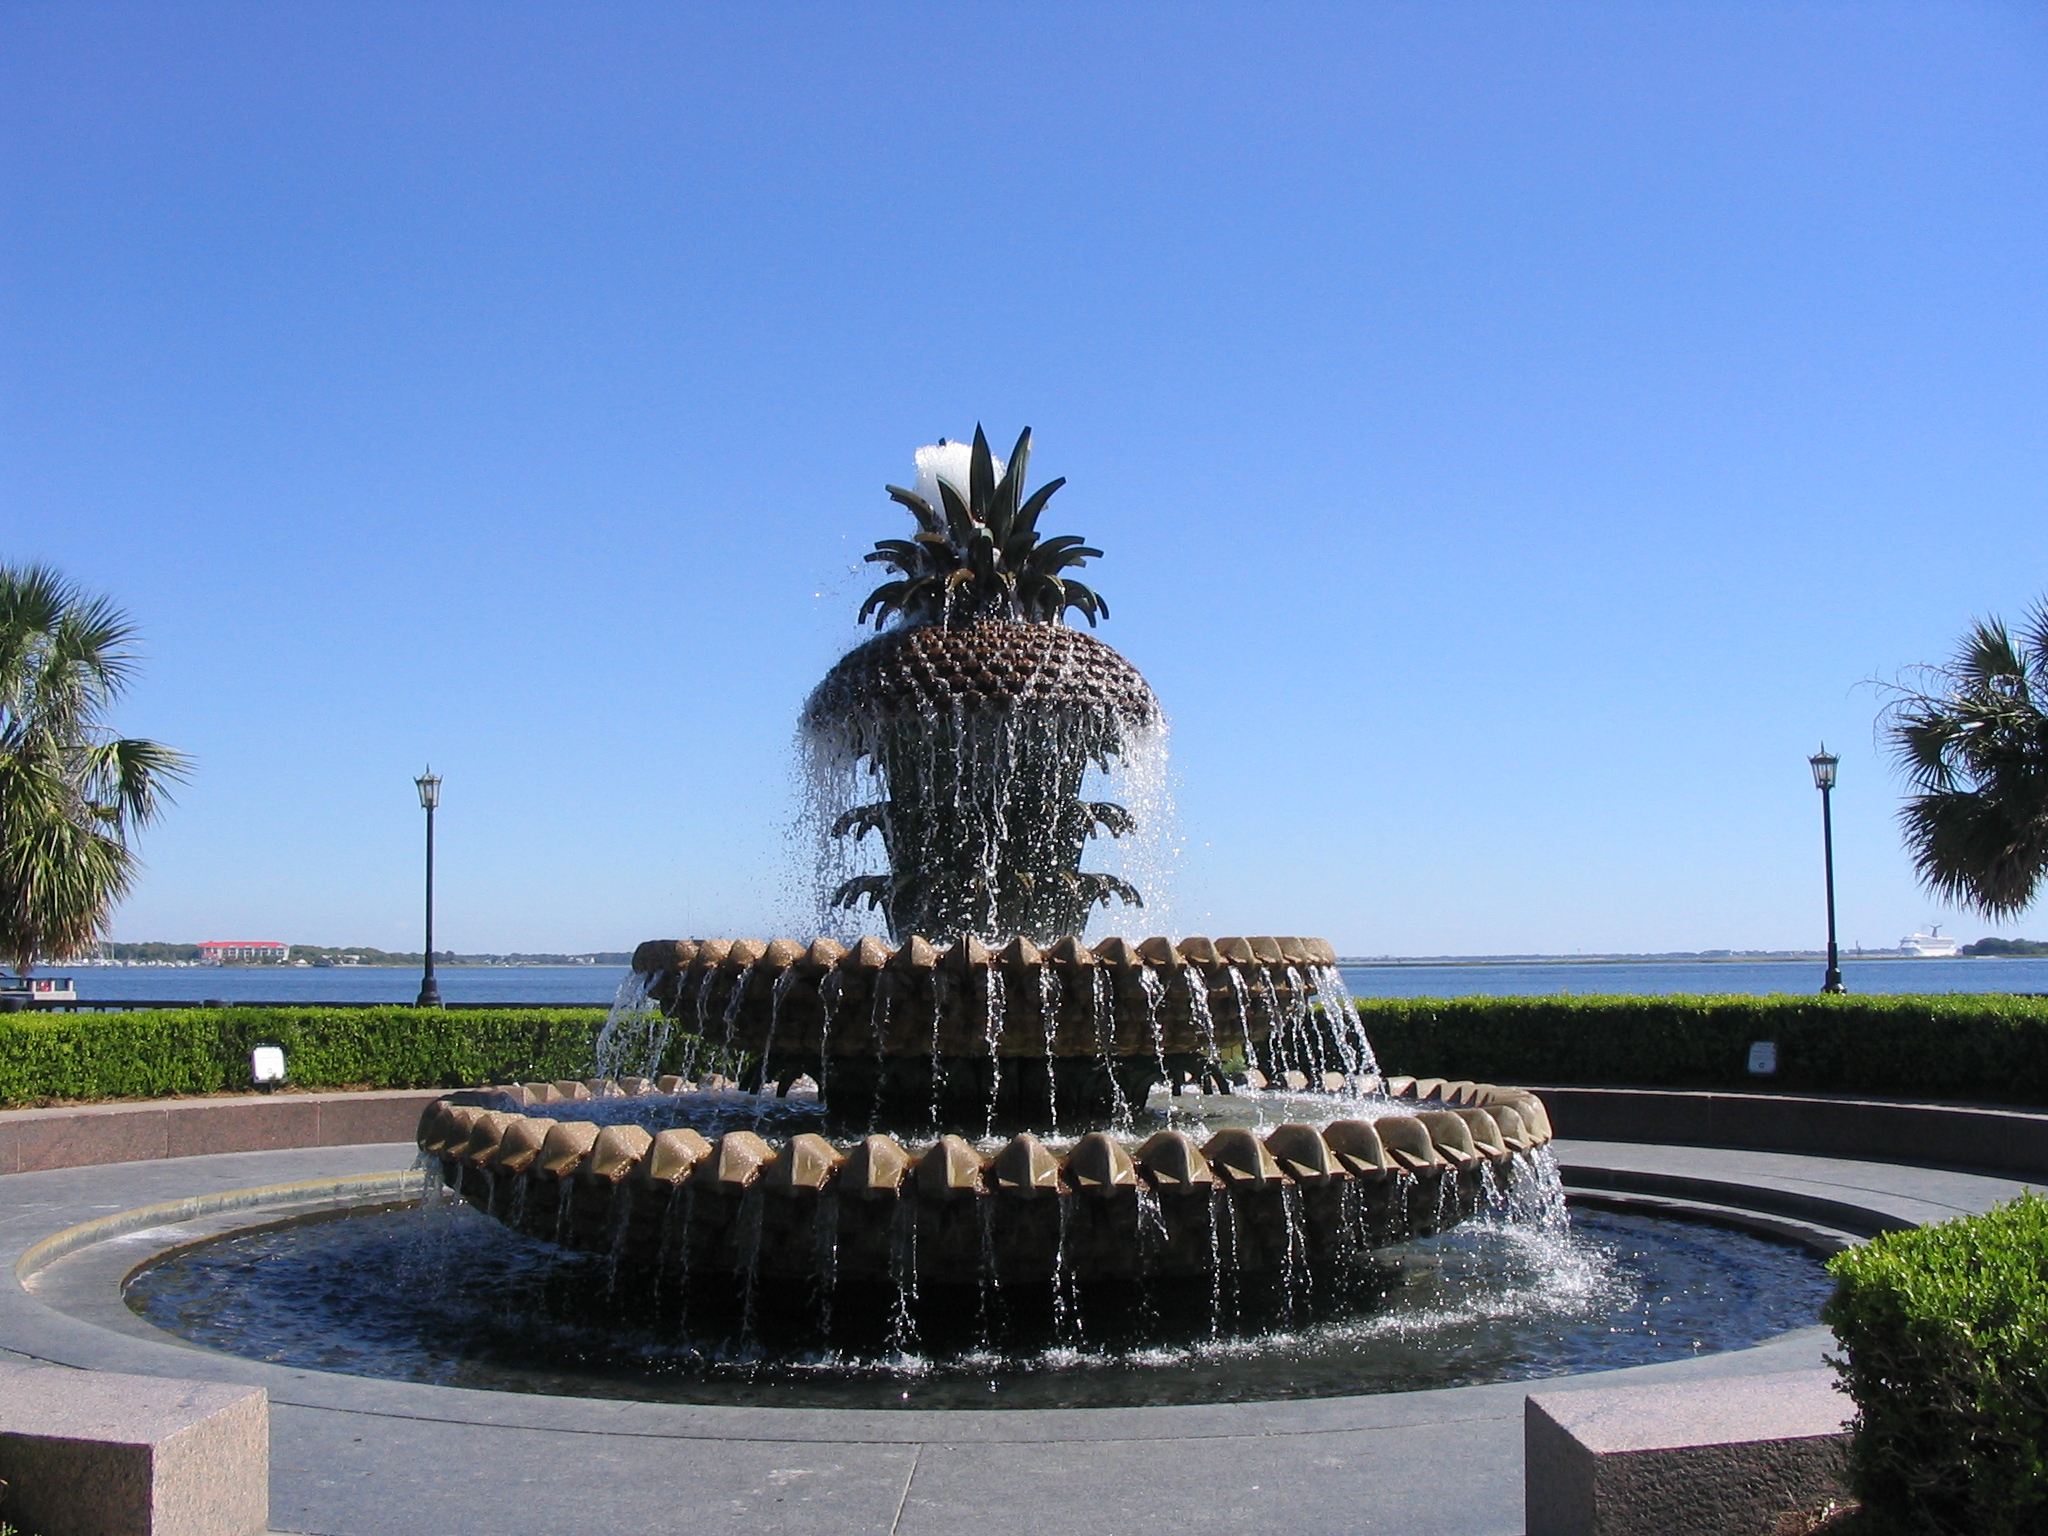 http://upload.wikimedia.org/wikipedia/commons/7/78/Charleston-SC-pineapple-fountain.jpg